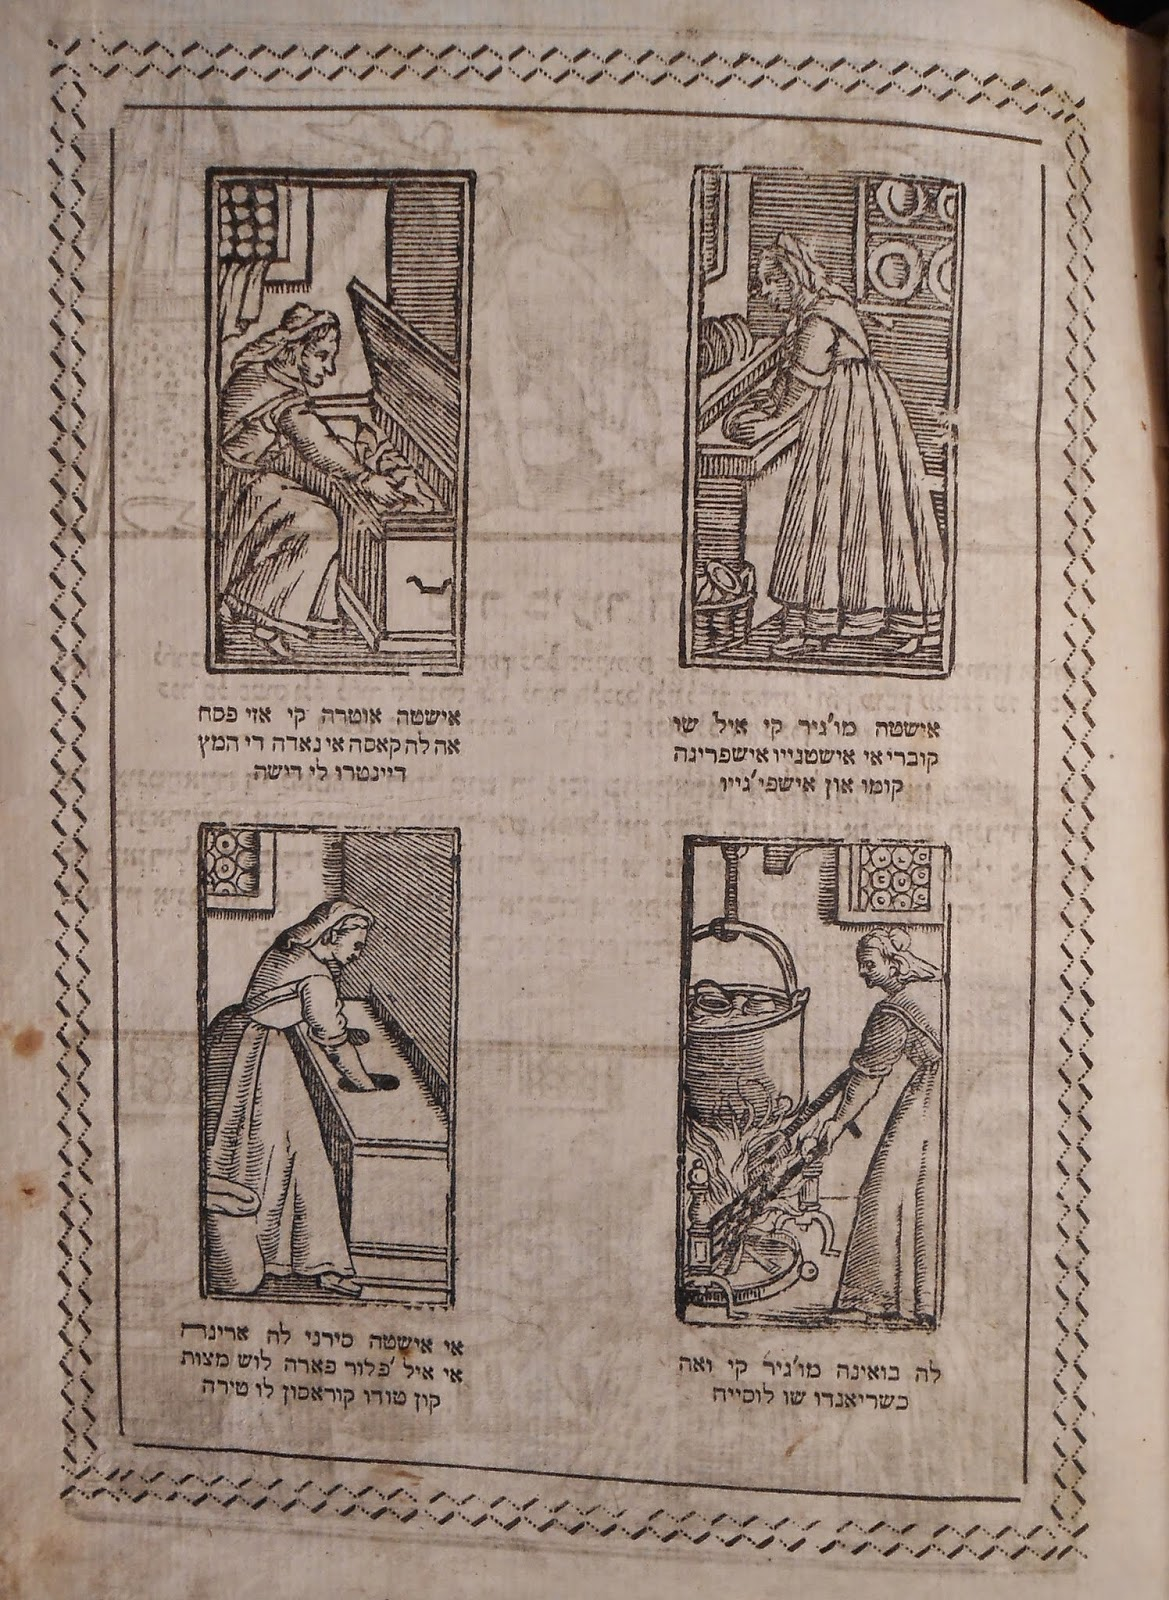 A set of four woodcut illustration accompanied by Hebrew text. They show a woman engaged in various domestic tasks including cooking and building up a fire.